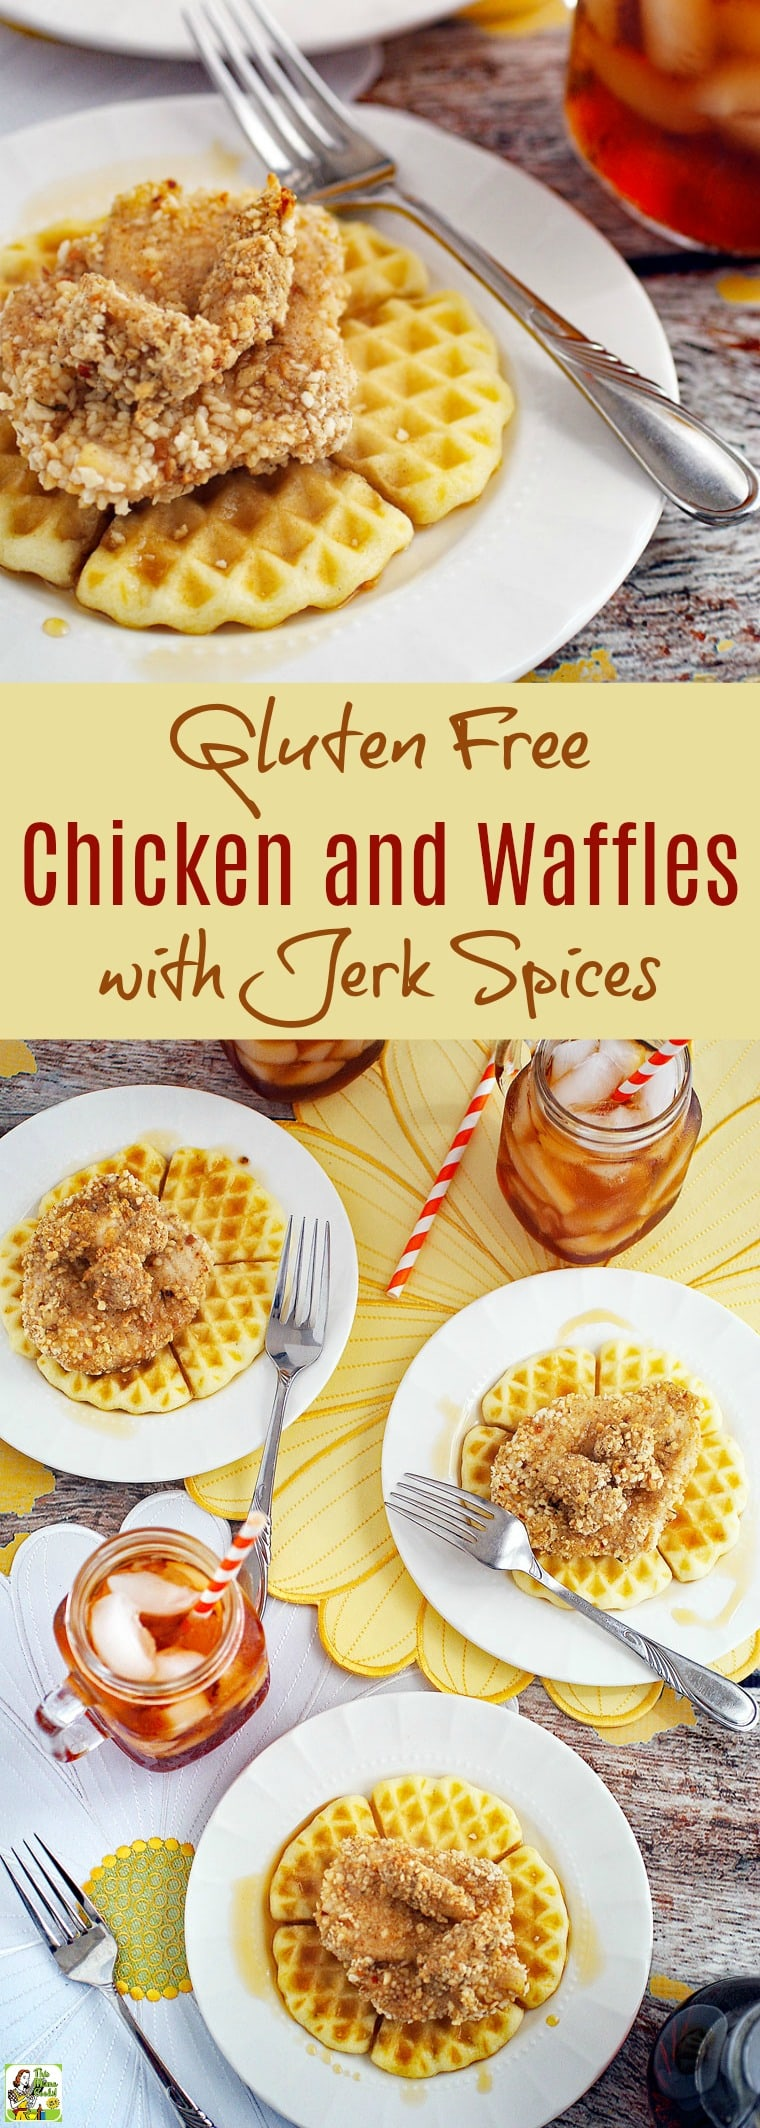 Love chicken and waffles but are gluten free? Click here to get a recipe for an easy to make, oven baked and healthy, homemade Gluten Free Chicken and Waffles with Jerk Spices recipe! Use your favorite gluten free waffle mix. Perfect for brunch, dinner or brinner! #GlutenFree #Chicken #Waffles #ChickenWaffles #Breakfast #Dinner #Brinner #JerkSpices #GlutenFreeWaffles #SouthernCooking